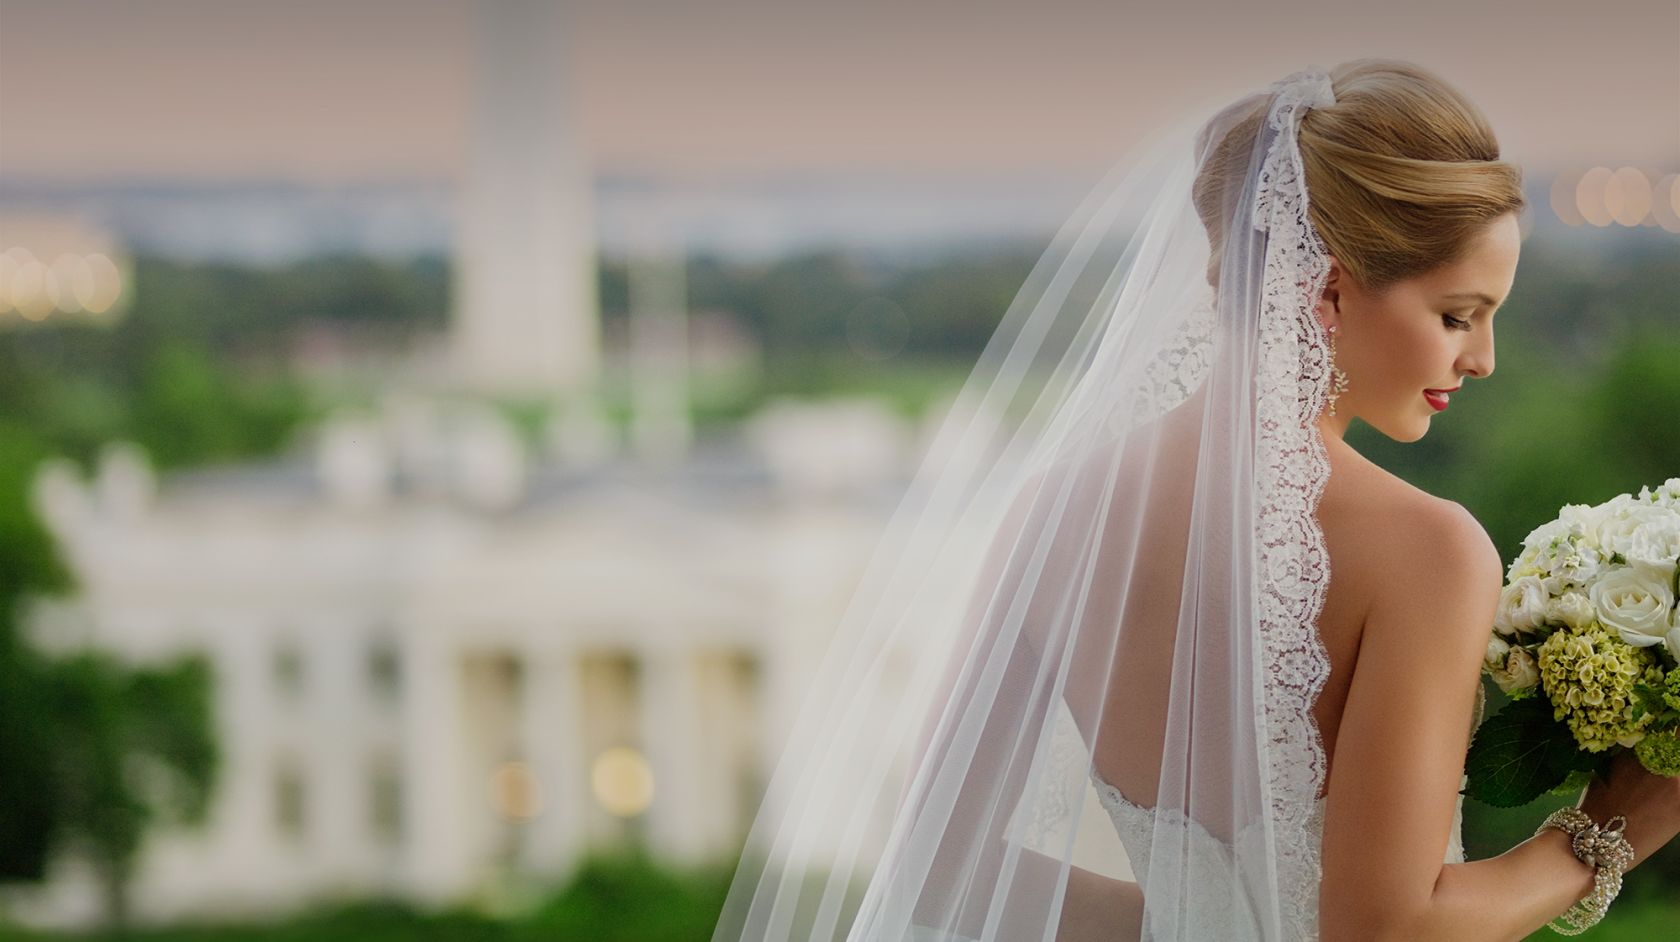 Bride Overlooking The White House at Top of the Hay